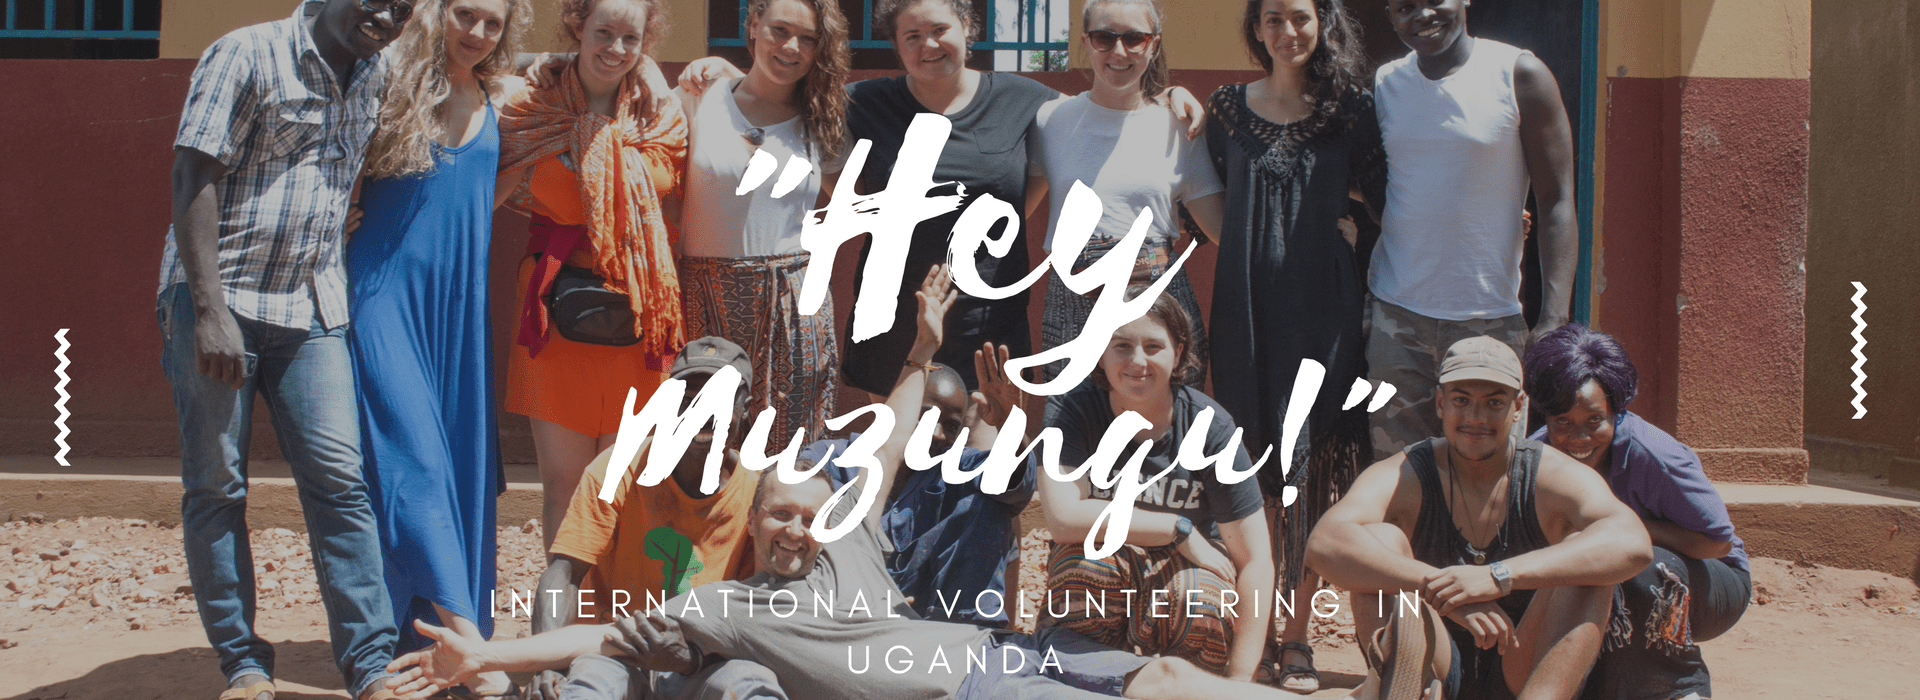 """Hey Muzungu!""  International volunteering in Uganda"